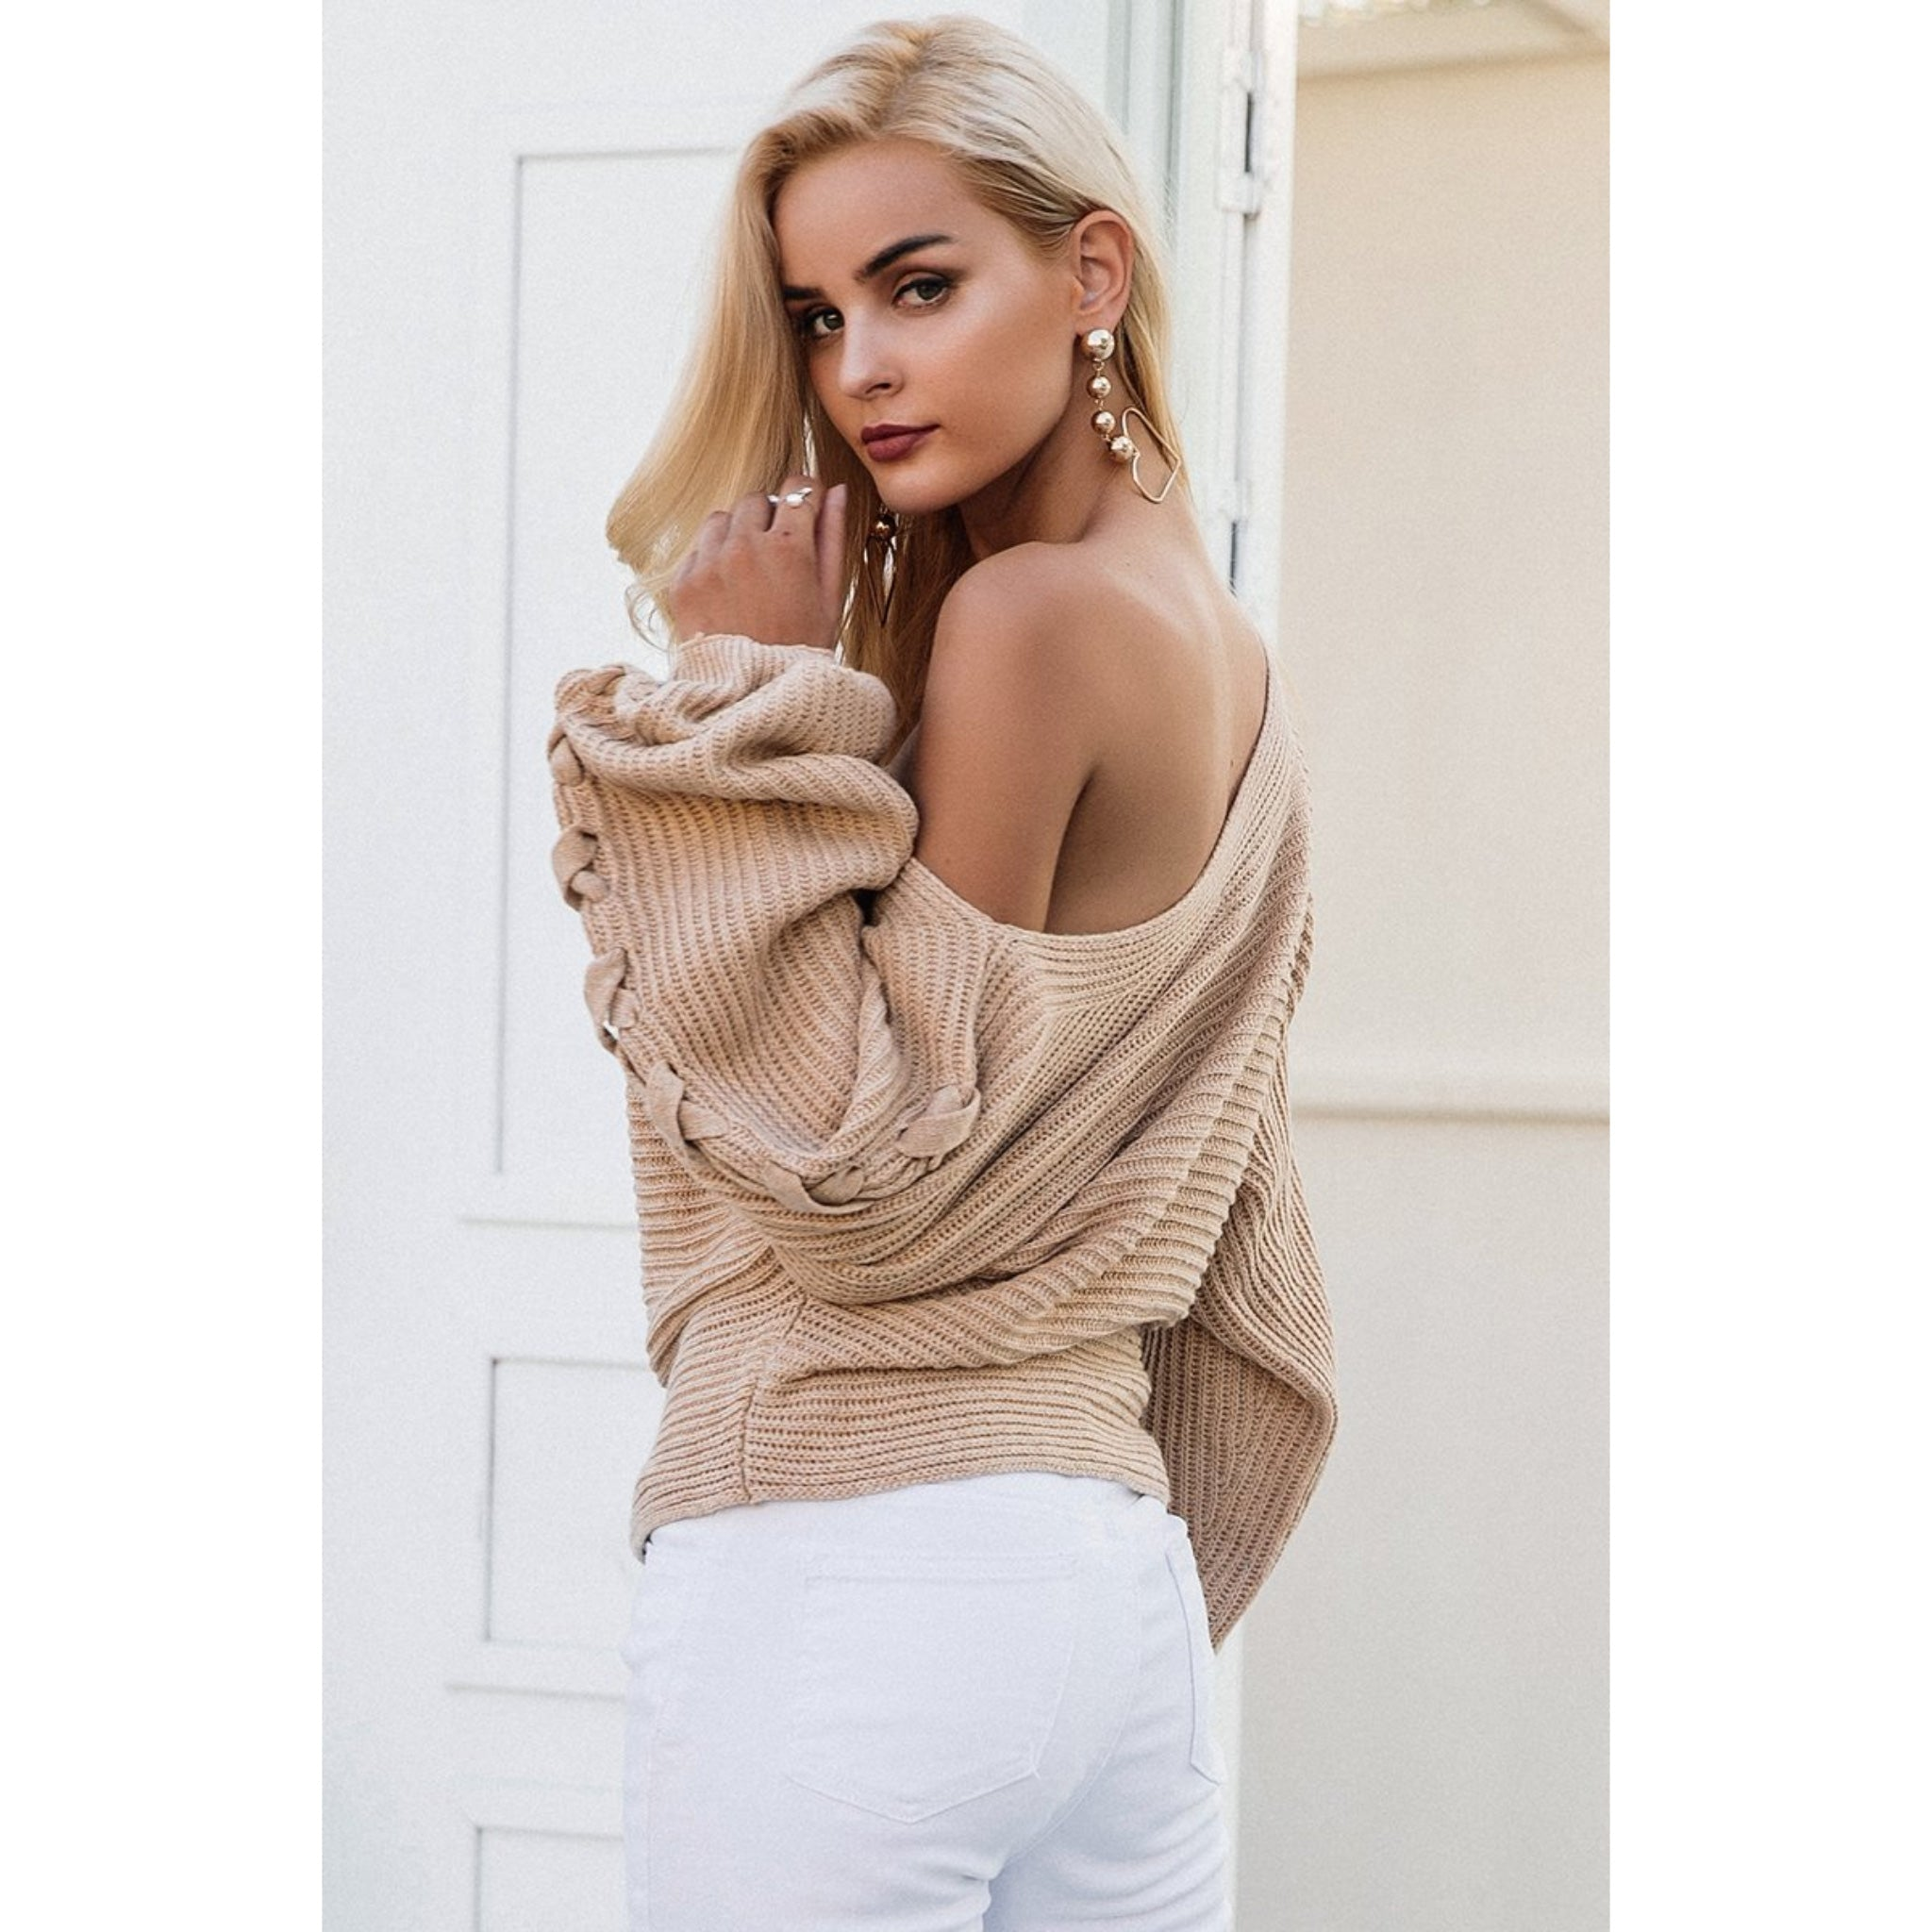 Batwing Sleeve Sweater with One Shoulder Cute Fall Outfit